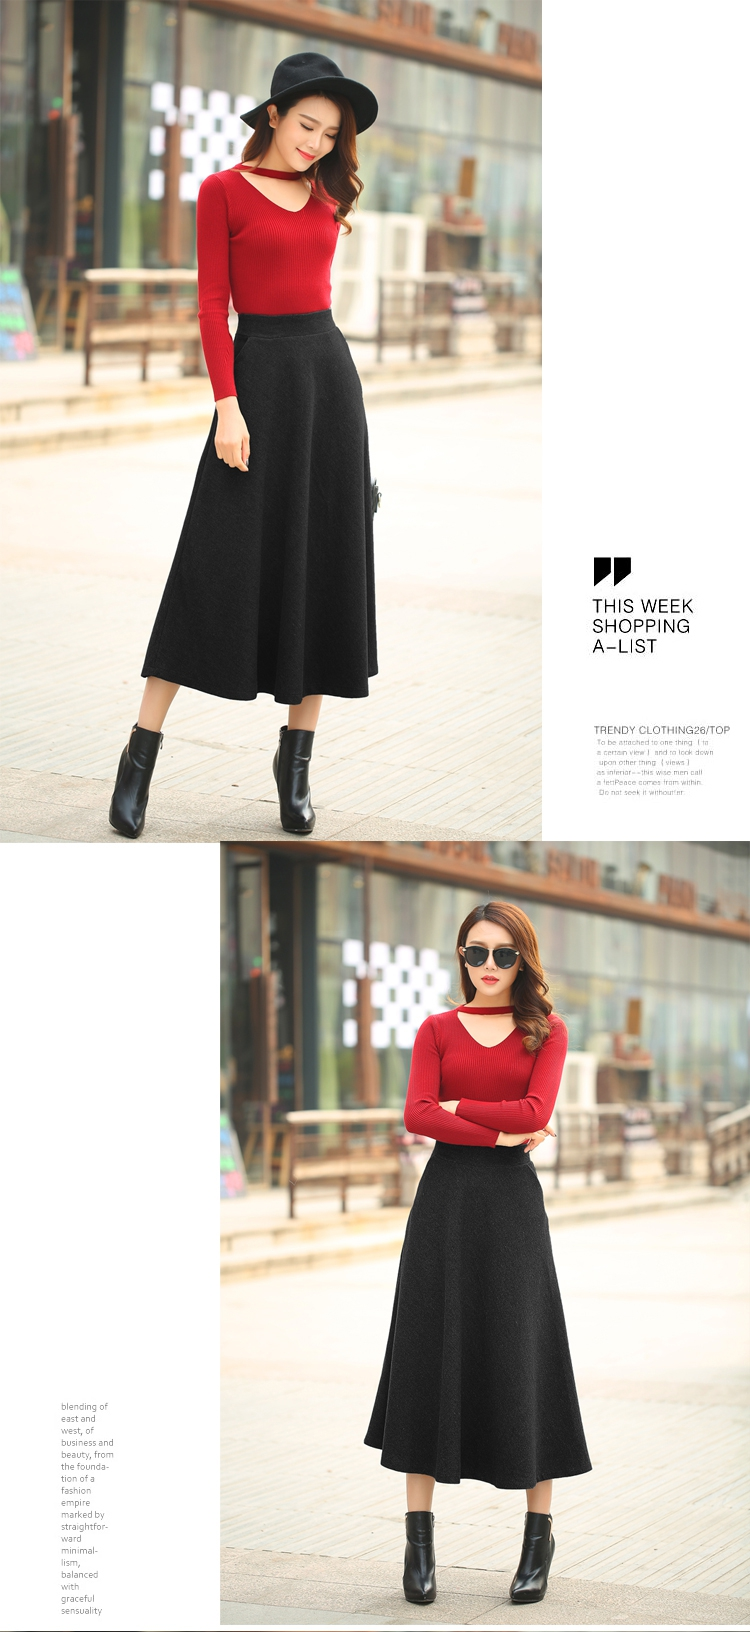 New Winter Skirt Autumn Fashion Womens Long Woolen Skirts A Line Top Up Upan Size Chartcm 1 Cm039 Inch